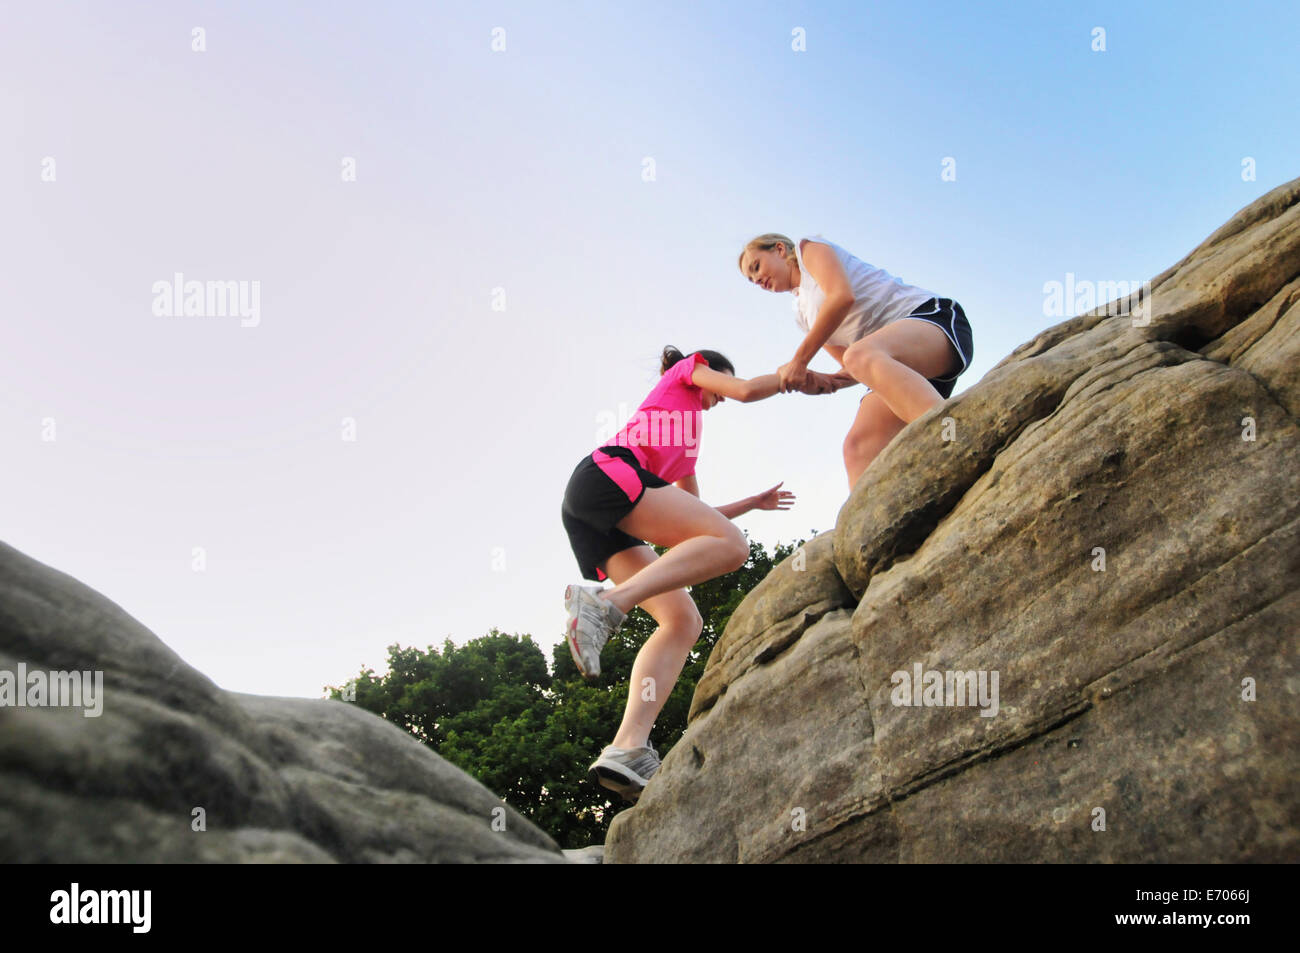 Two young women runners helping each other on top of rock formation - Stock Image